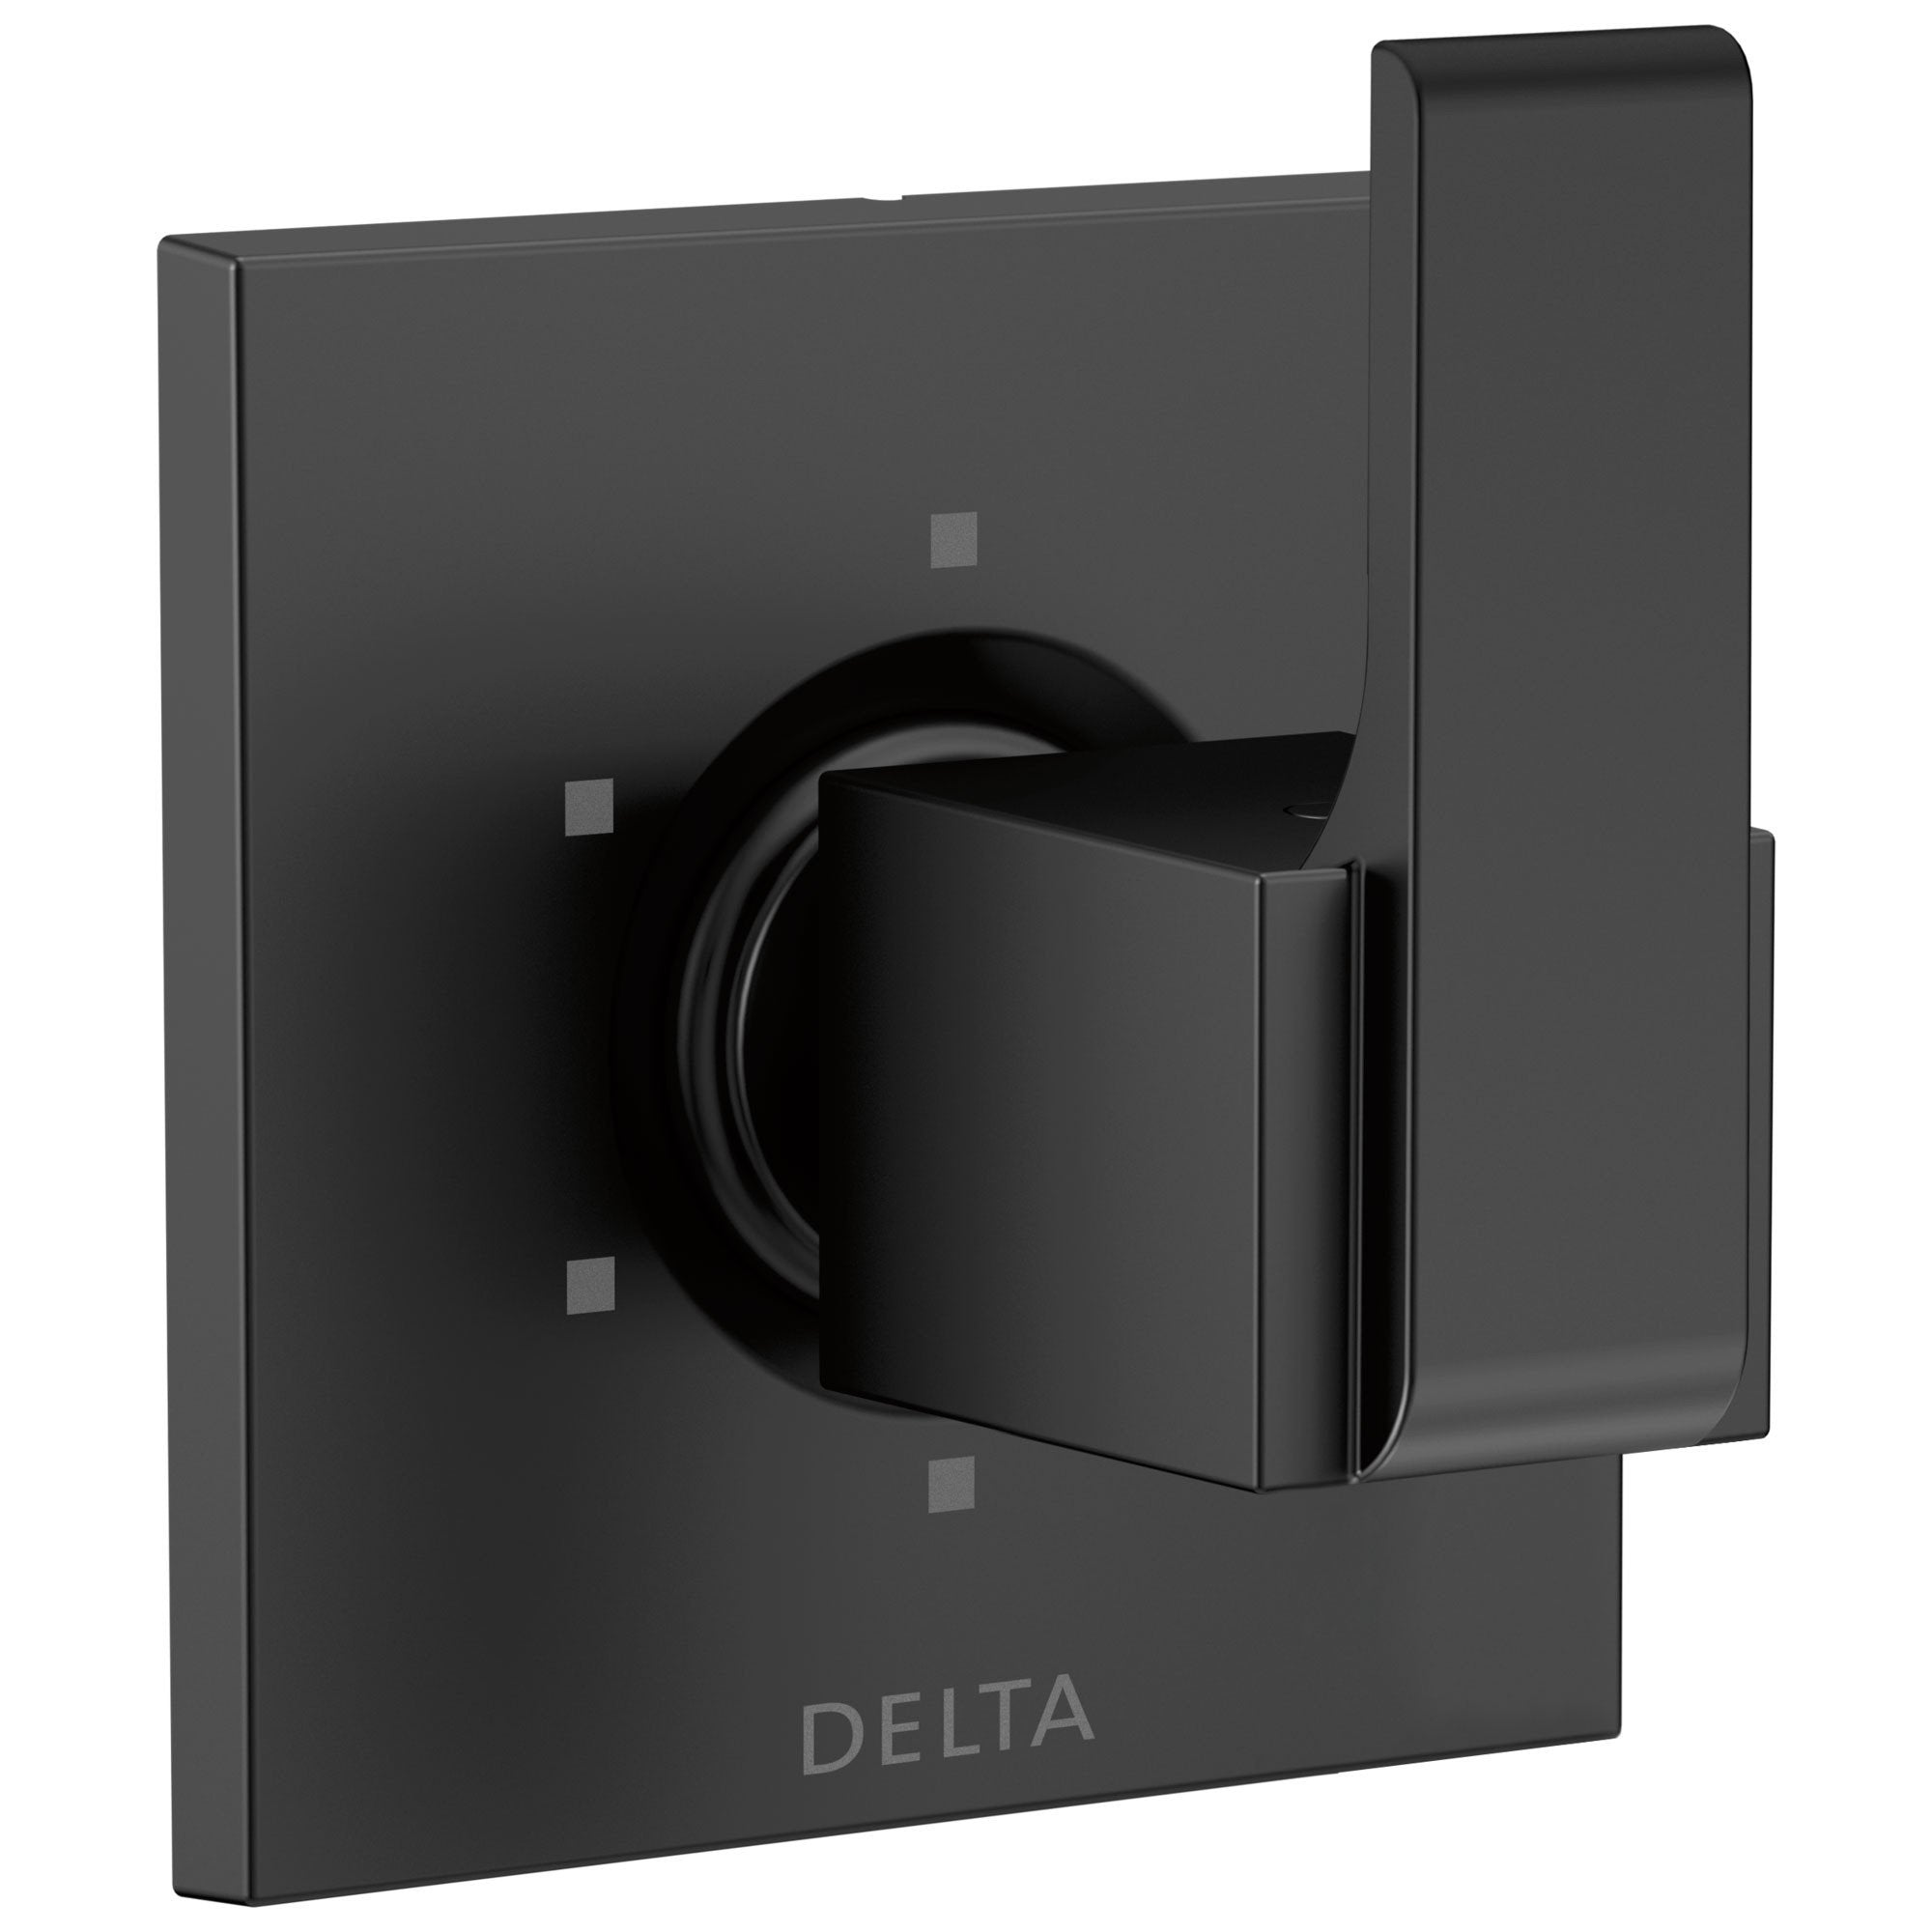 Delta Ara Collection Matte Black Finish Modern Square Lever Handle 6-Setting 3-Port Shower Diverter Trim Kit (Requires Rough-in Valve) DT11967BL